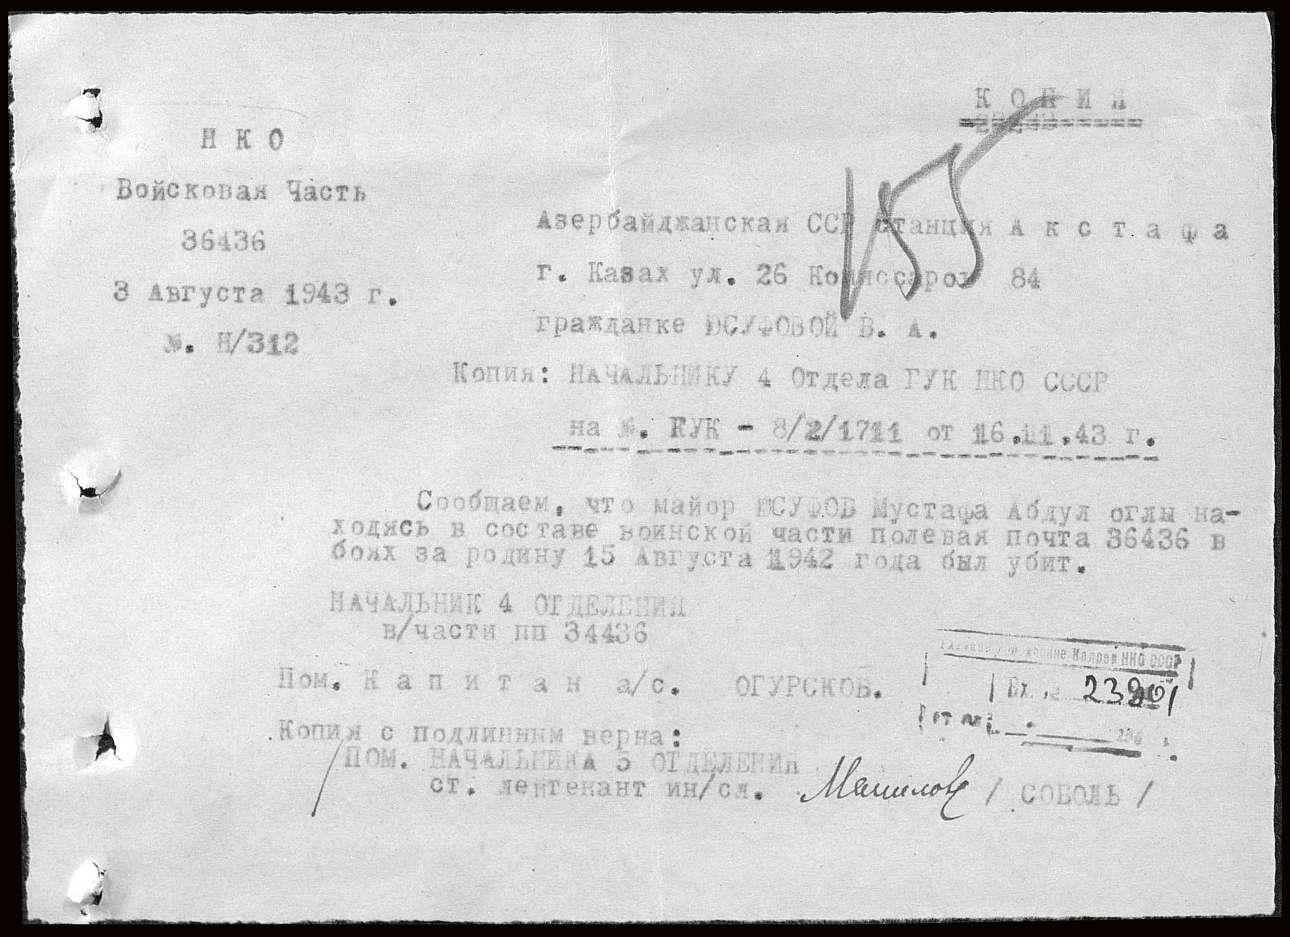 This is to let you know that major Yusufov Mustafa Abdul(la) oglu was killed in the battles for motherland on 15 August 1942. Date: 3 August 1943